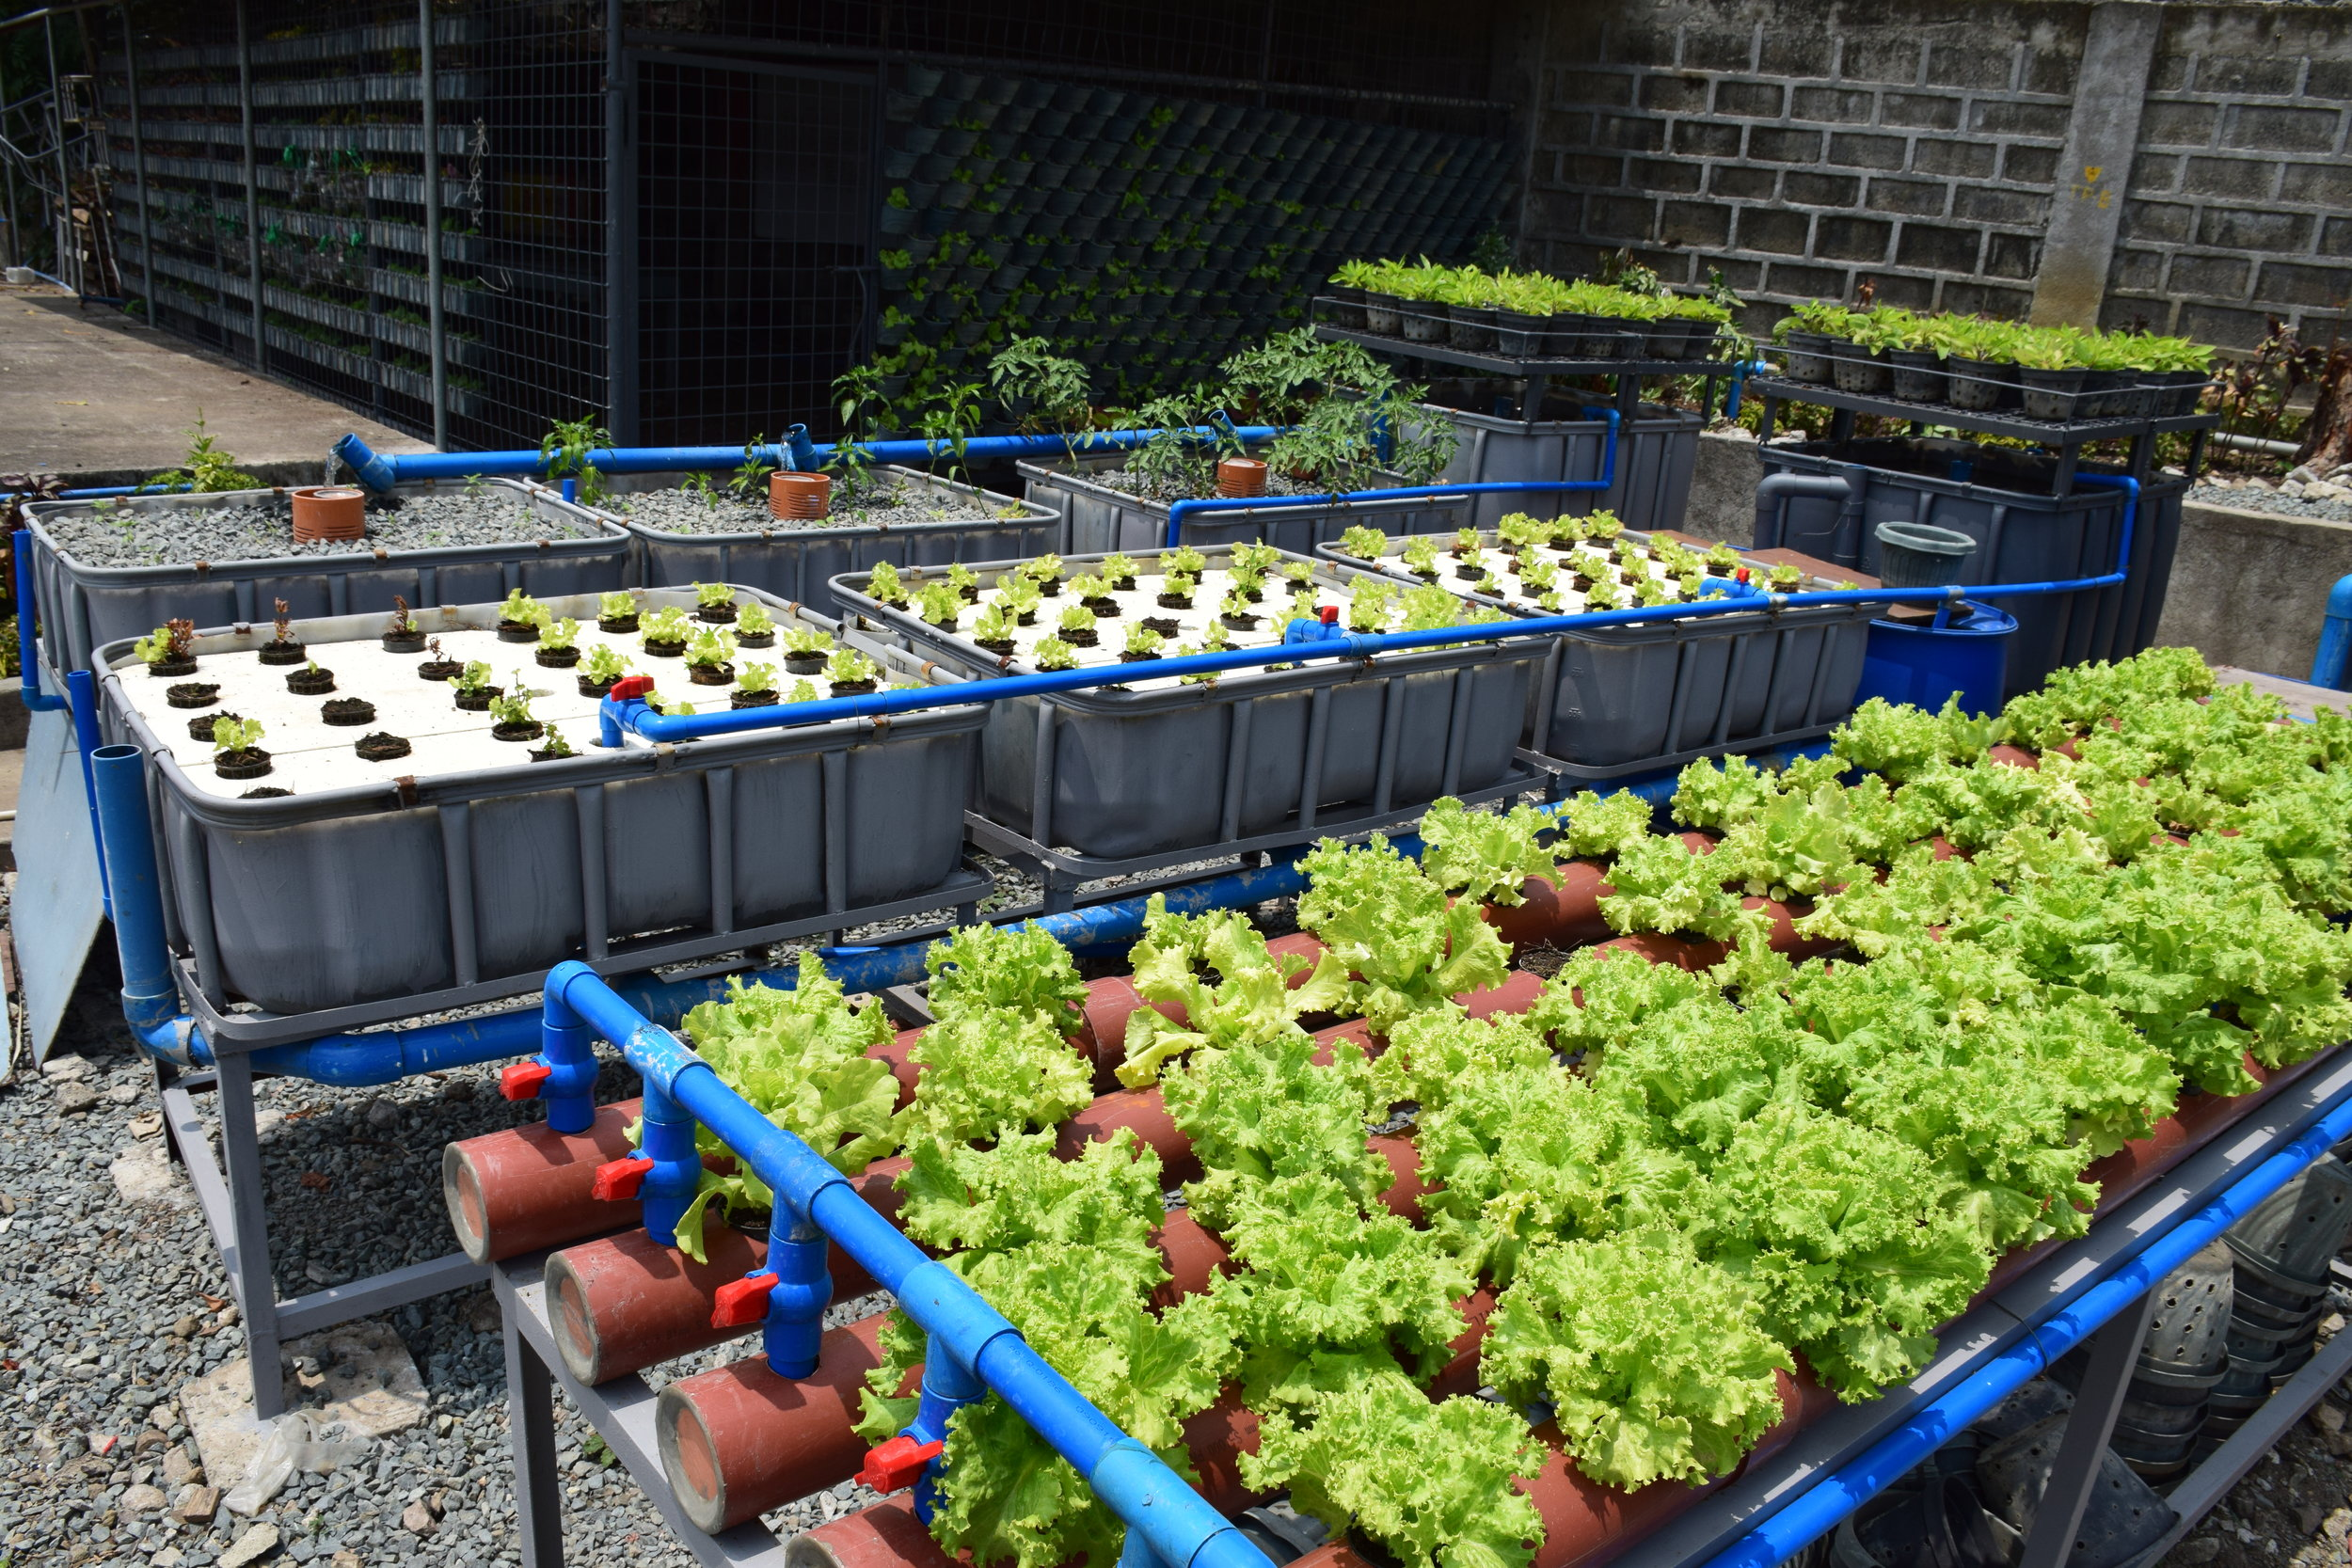 Training modules for three models of Aquaponics: 1.  Media Bed  (far back) 2.  Deep Water Culture  (middle) 3.  Nutrient Film Technique  (front tubes with lettuce growing on them)